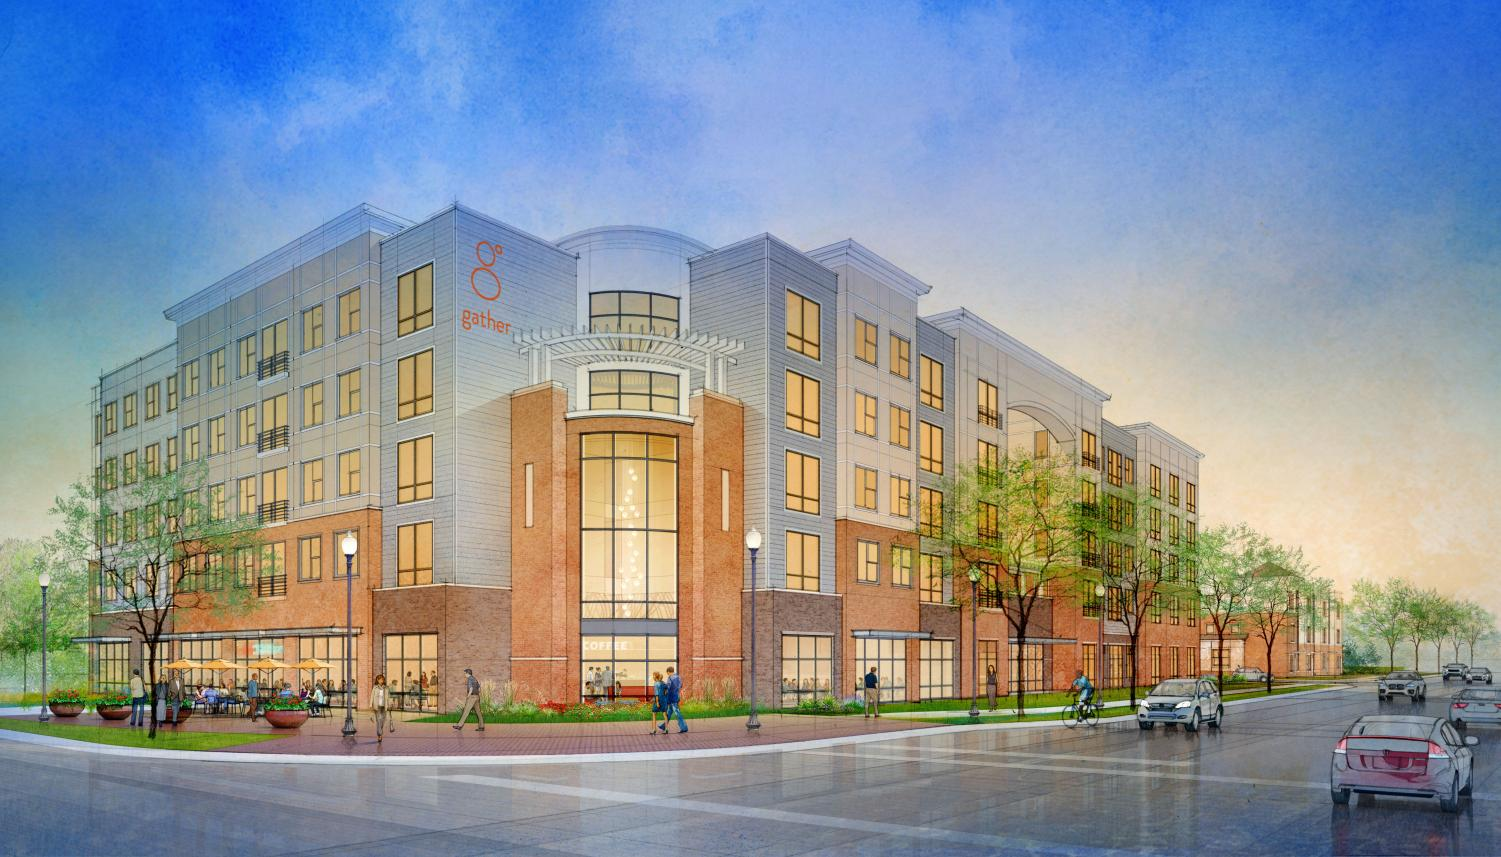 The new Gather residential area was designed by real estate company Rael Development Corporation. The development will consist of two main buildings, a five-story apartment complex north of Clark Street and a three-story collection of hotel rooms and townhomes just south of it.